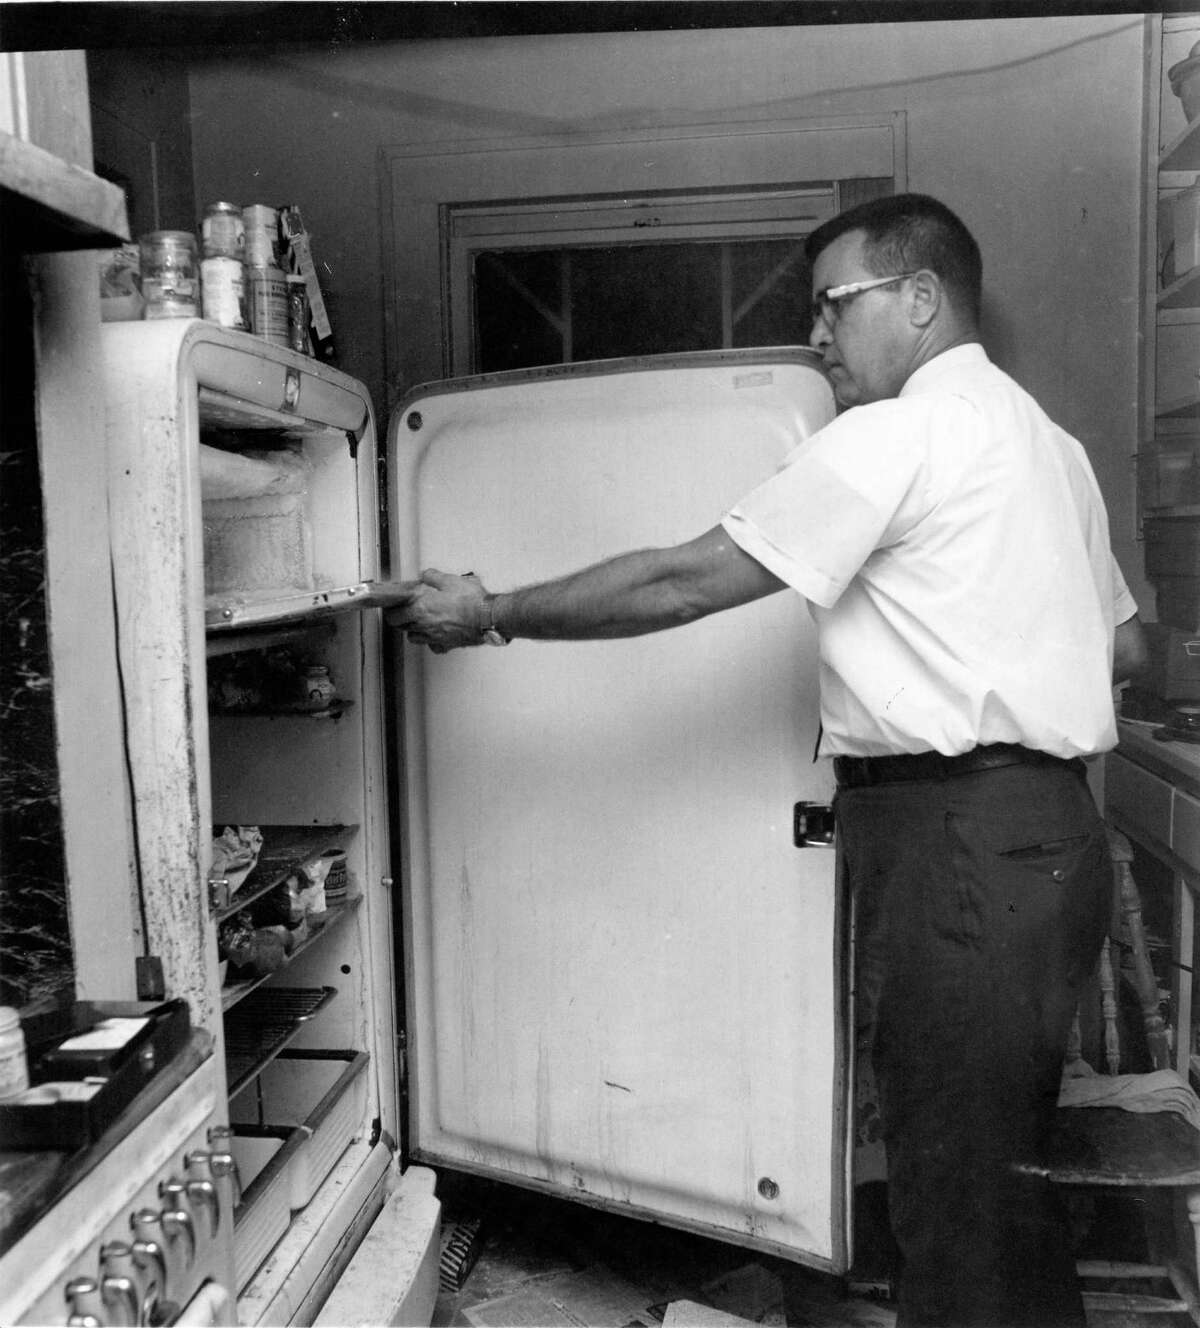 Houston Police homicide detective J.P. Paulk examines the freezer compartment of a refrigerator where a torso was found. Fred C. Rogers, 81, and his wife, Edwina Harmon Rogers, 79, were found dismembered in their refrigerator at 1815 Driscoll on June 23, 1965.